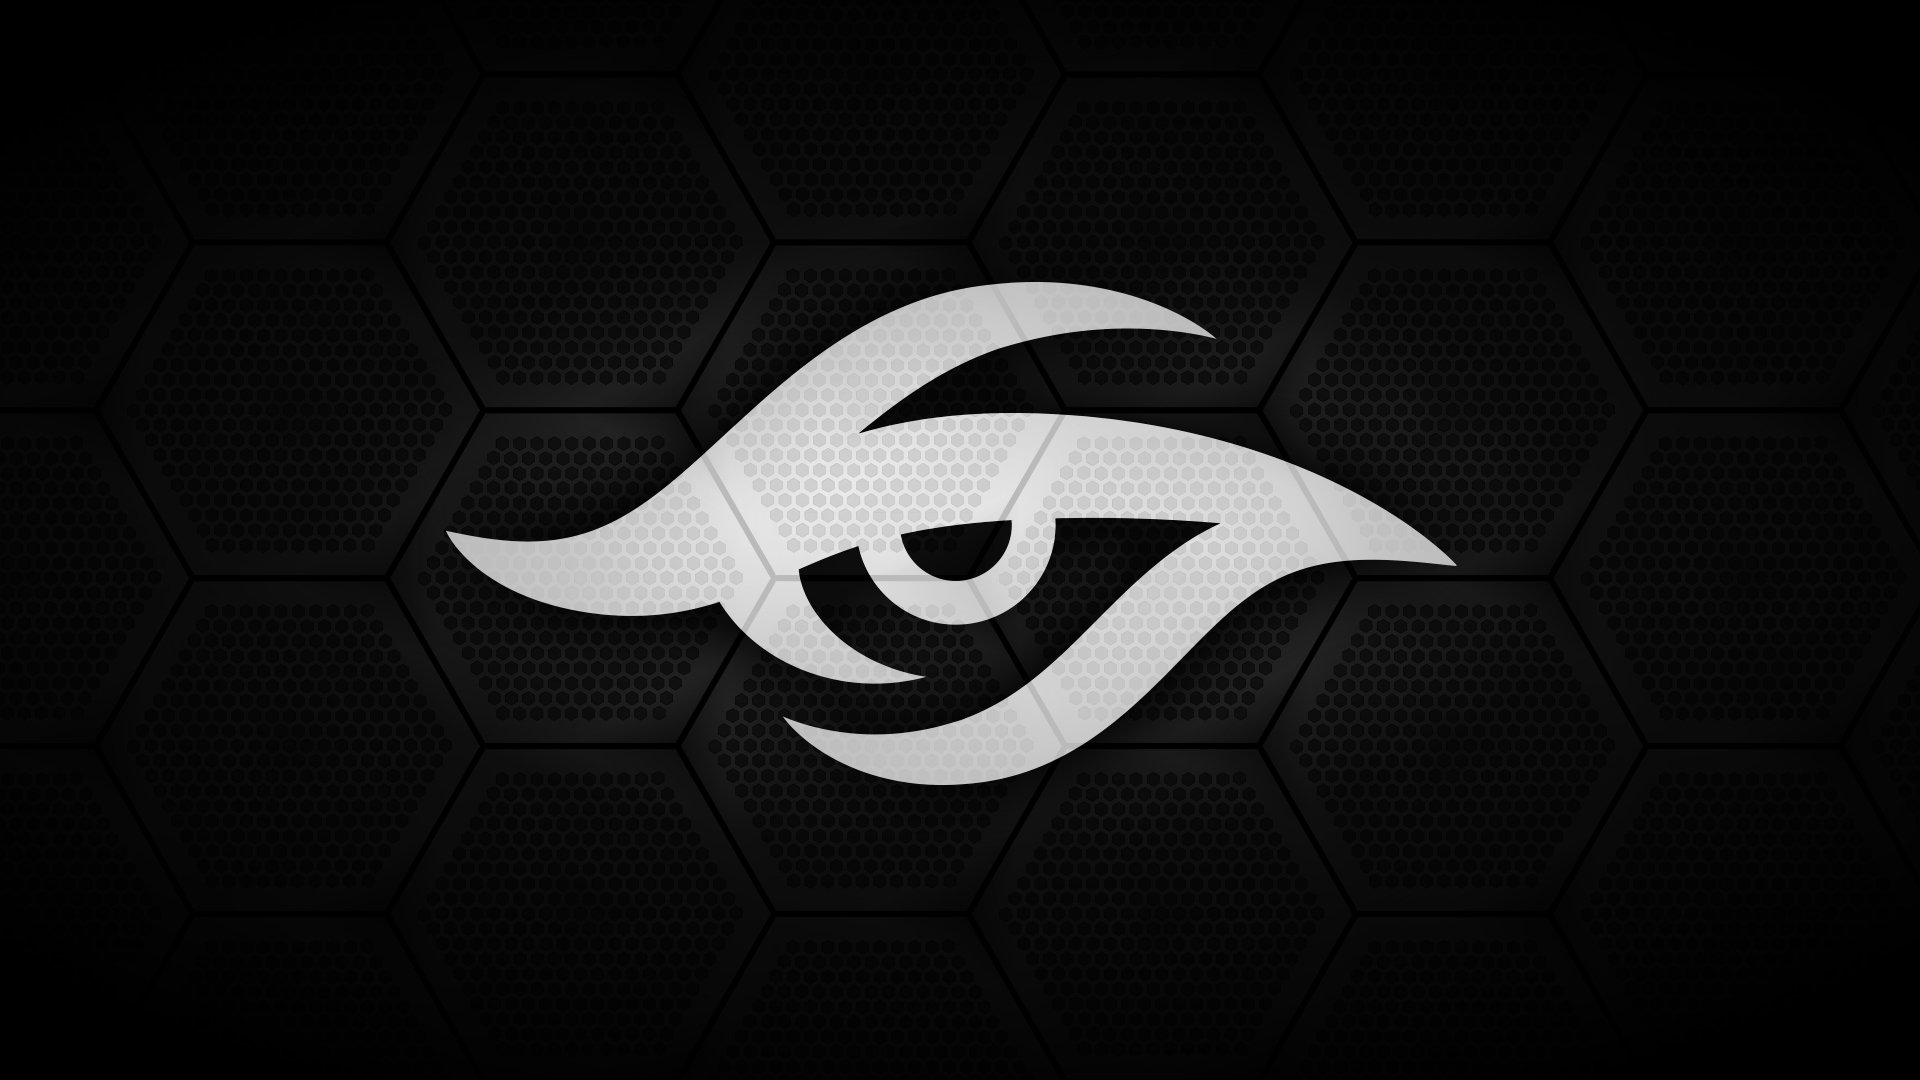 C9 Iphone Wallpaper Esports Full Hd Wallpaper And Background Image 1920x1080